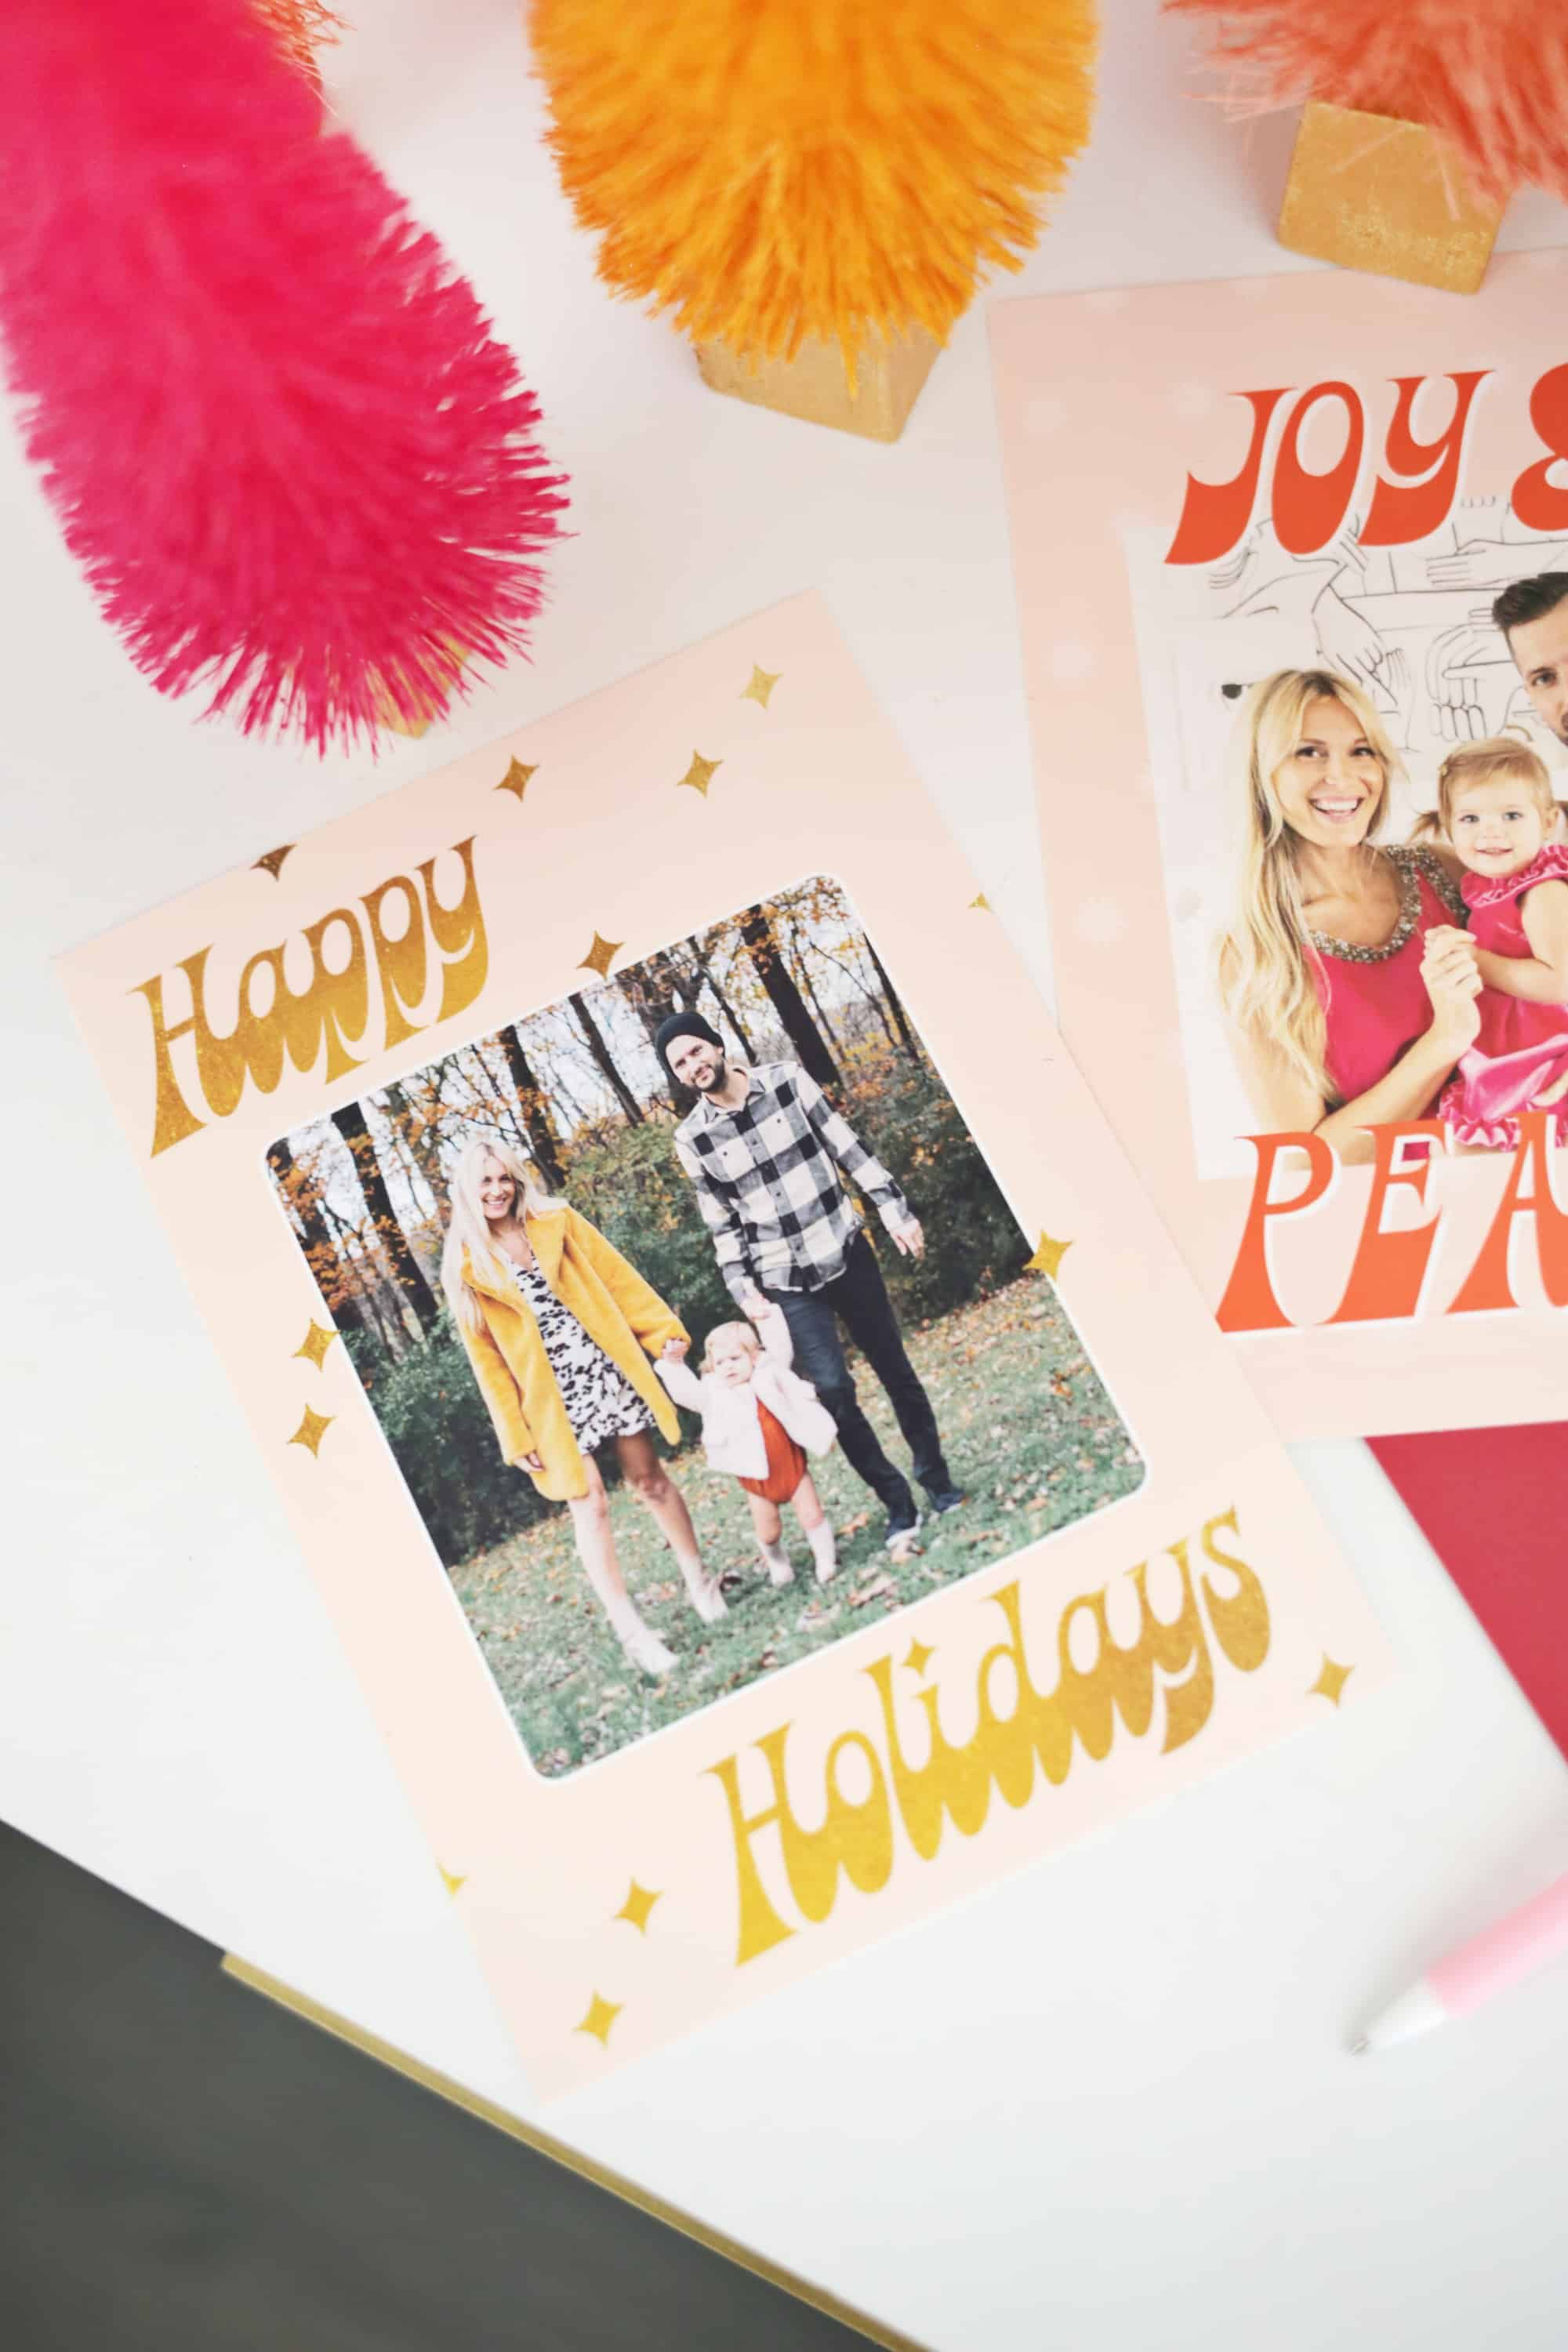 Printing Your Own Christmas Cards.Print Your Own Holiday Cards Free Template Included Snail